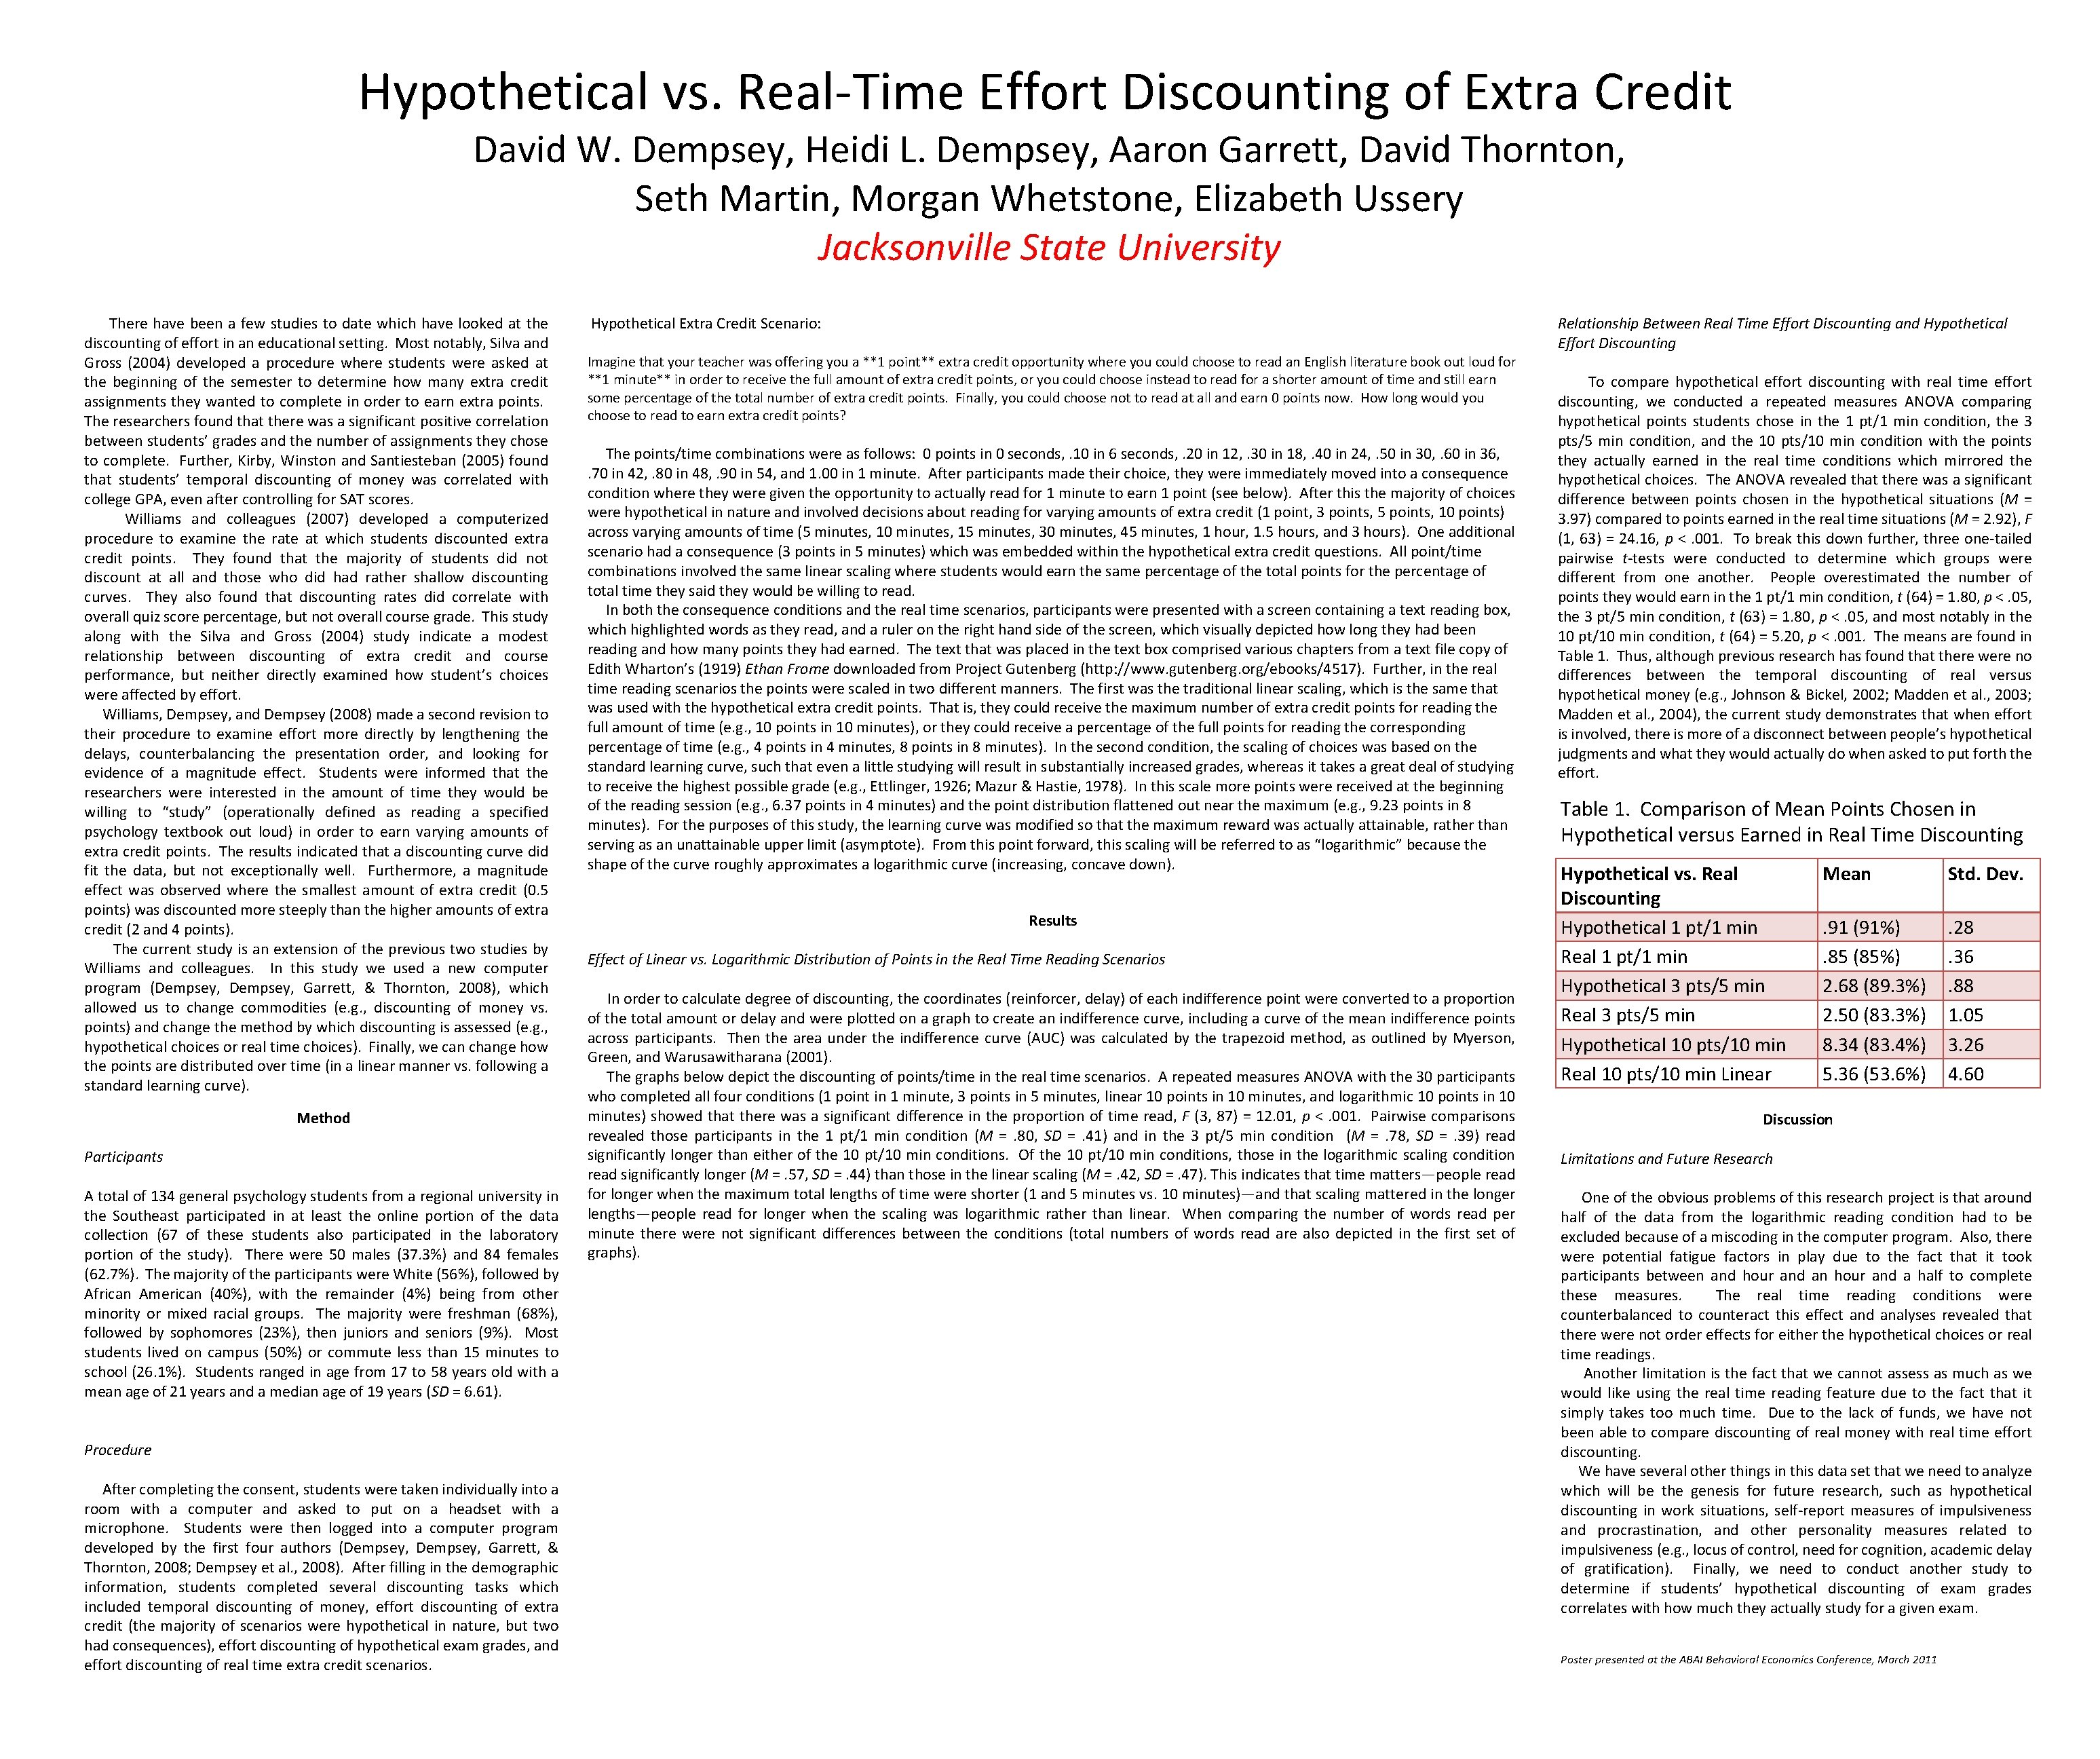 Hypothetical vs. Real-Time Effort Discounting of Extra Credit David W. Dempsey, Heidi L. Dempsey,